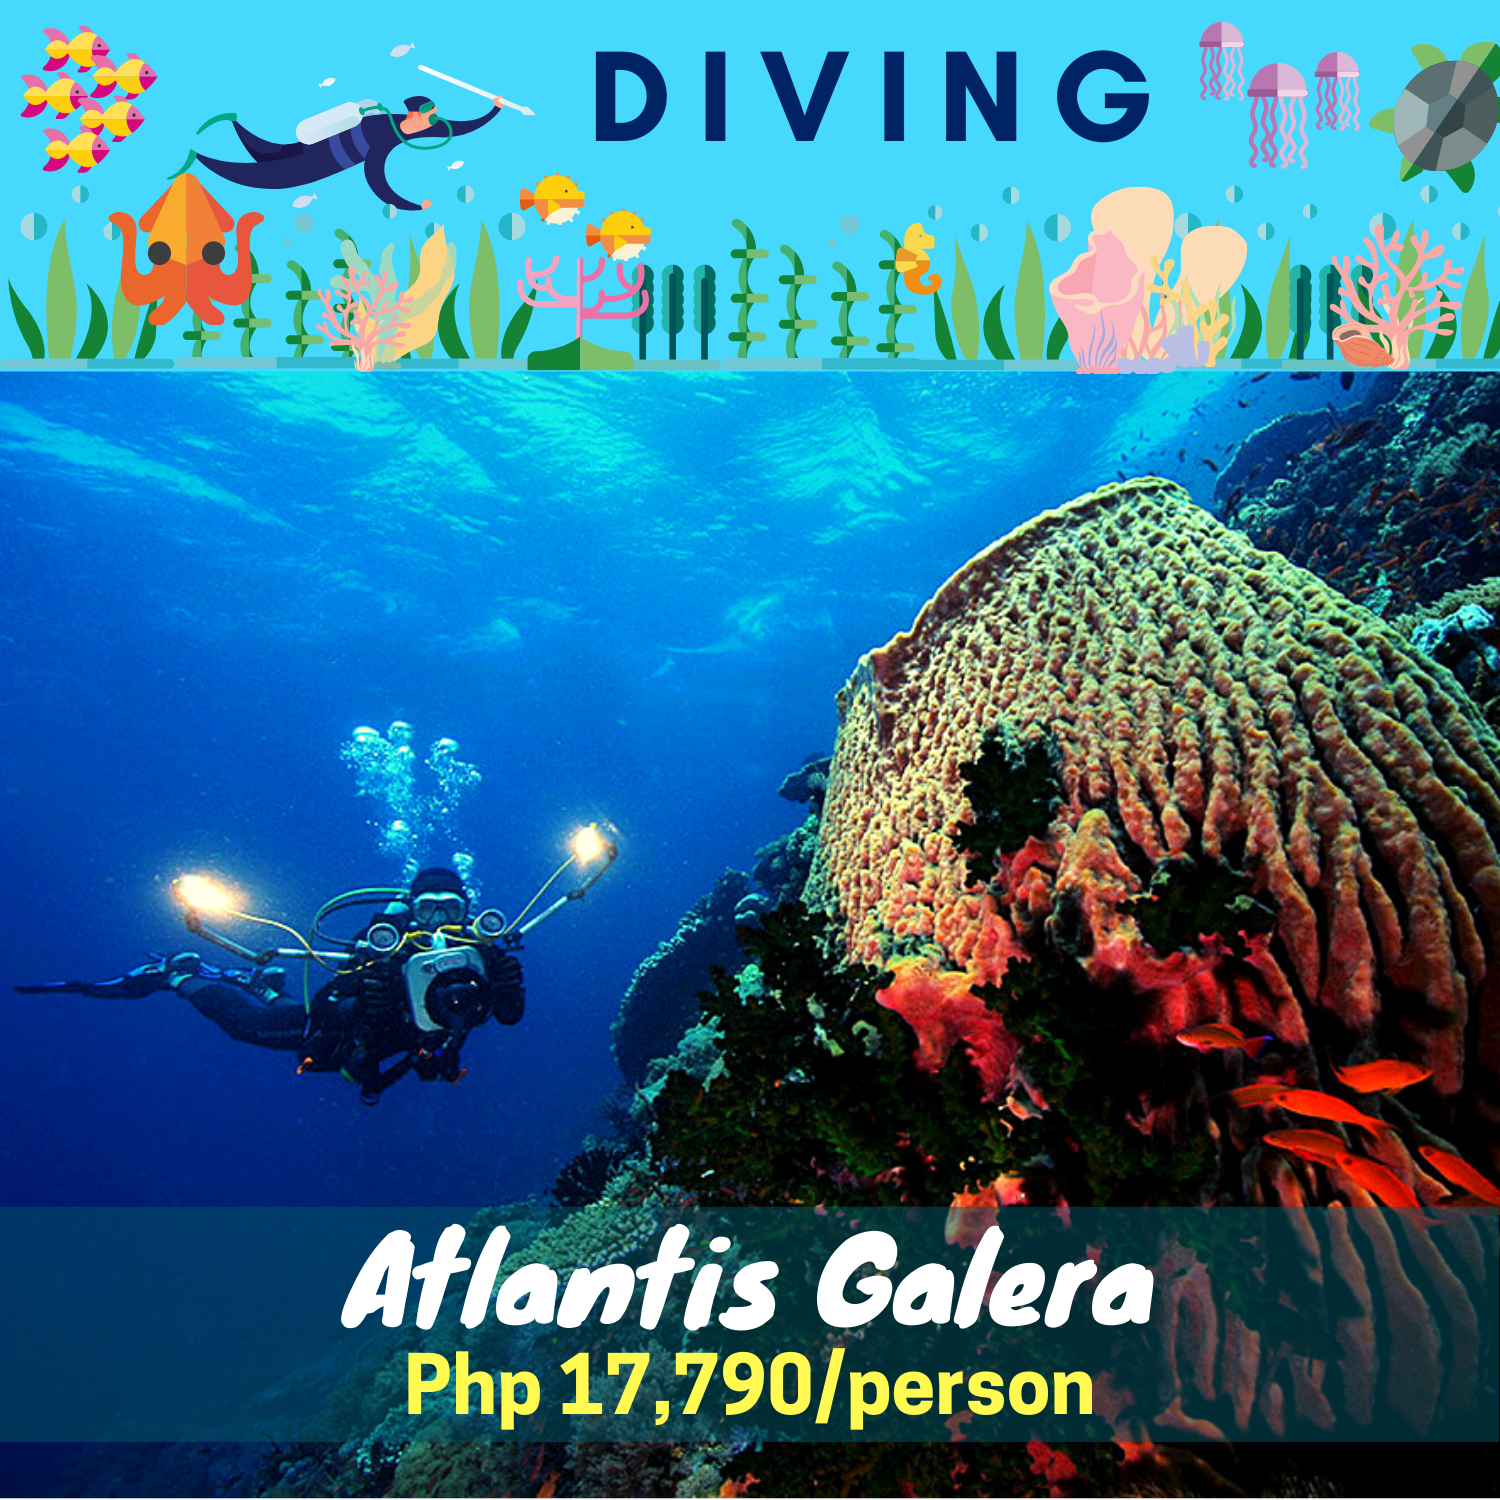 Atlantis Puerto Galera Diving Package